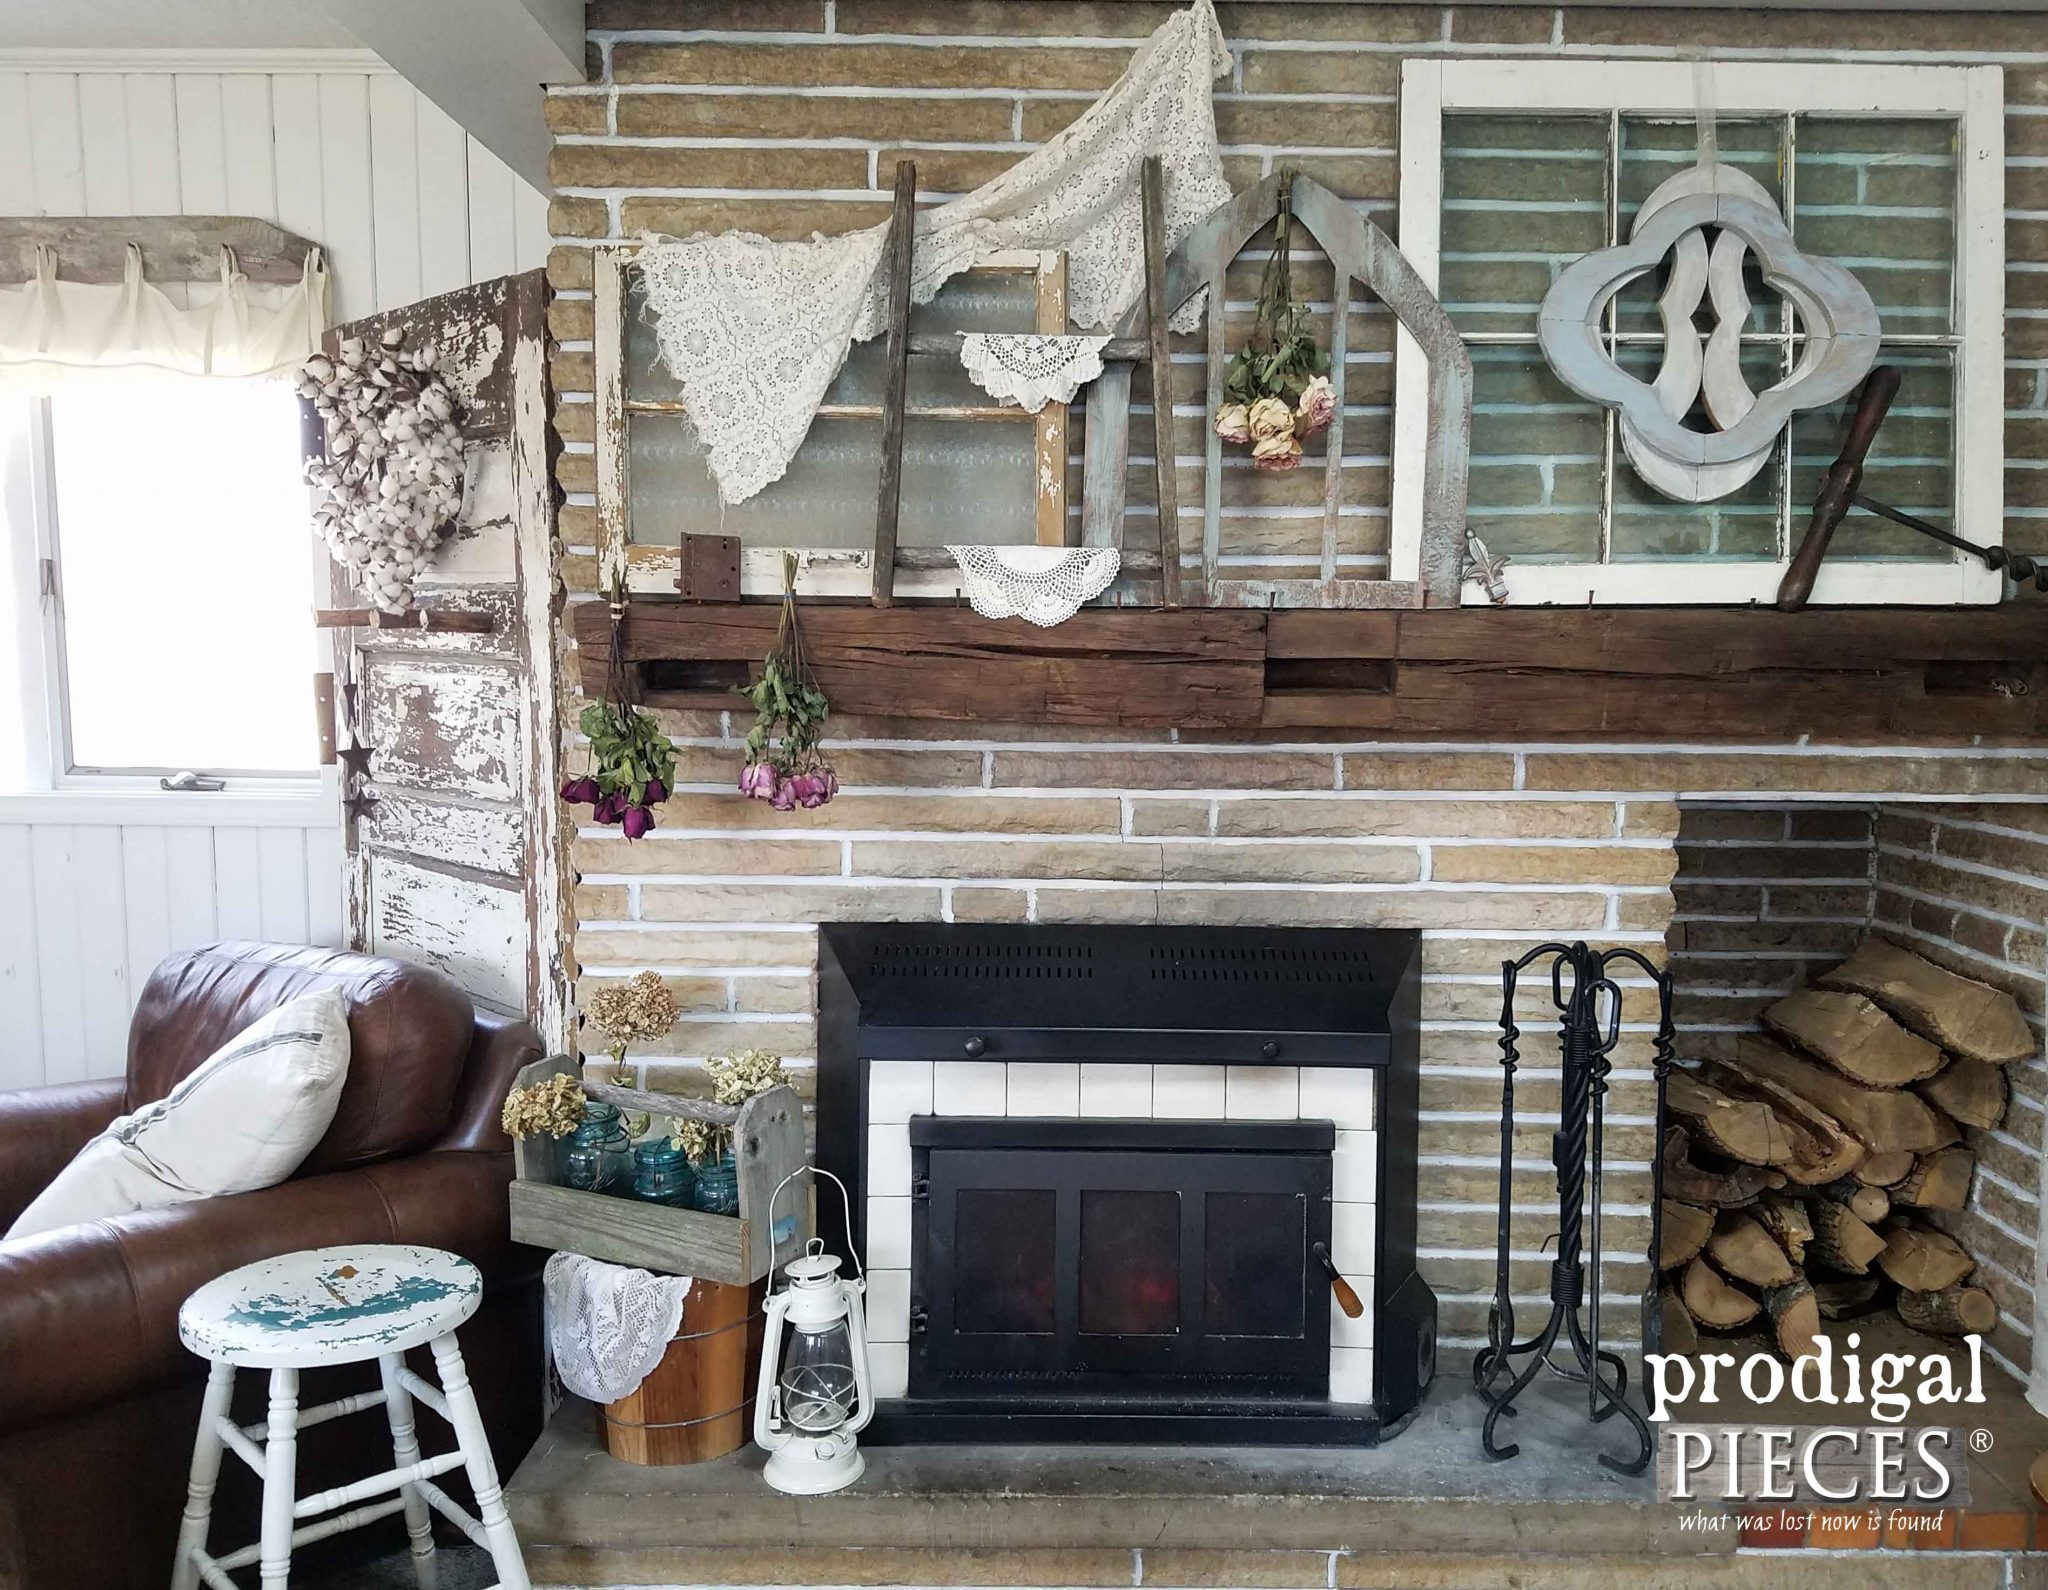 Salvage Style Fireplace Decor by Prodigal Pieces | prodigalpieces.com